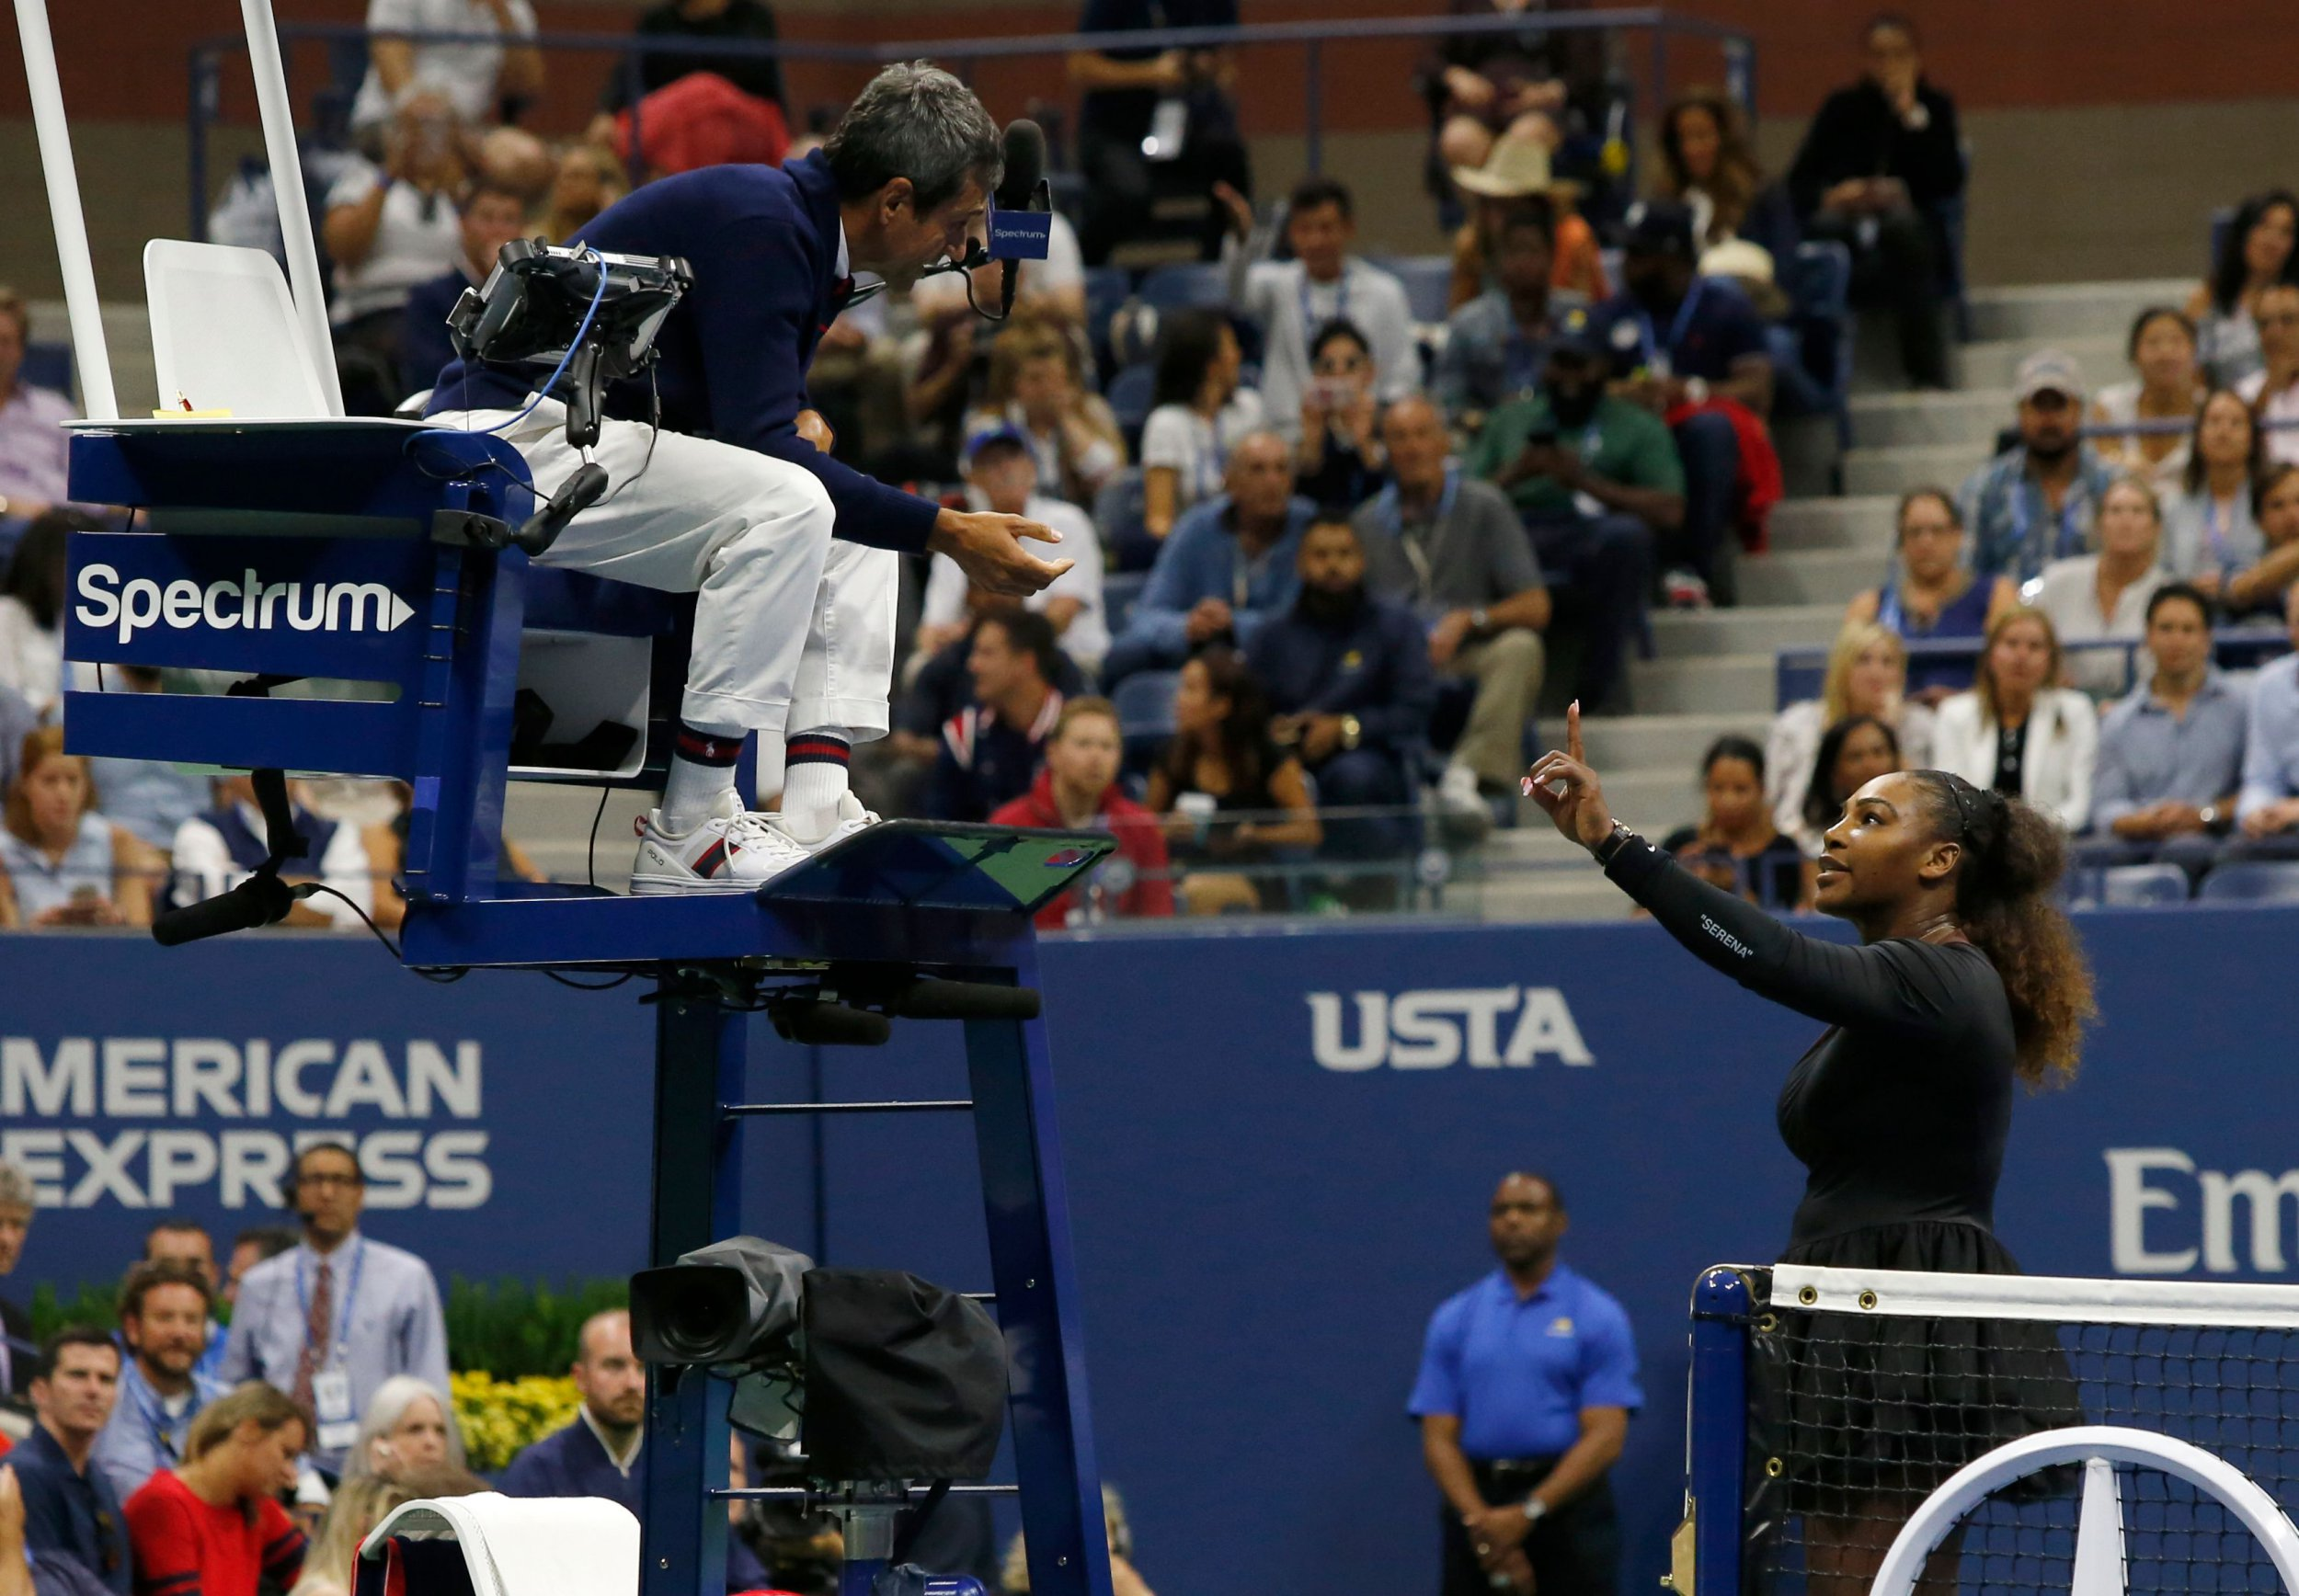 "(FILES) In this file photo taken on September 8, 2018 Serena Williams of the US argues with chair umpire Carlos Ramos while playing Naomi Osaka of Japan during their 2018 US Open women's singles final match in New York. - Serena Williams has been fined $17,000 by the US Tennis Association in the wake her outburst during a controversial US Open final loss to Japan's Naomi Osaka. The American star was fined for coaching, racquet abuse and for verbal abuse when she accused umpire Carlos Ramos of being ""a thief"" during Saturday's stormy final.Williams was incensed at the coaching violation, although coach Patrick Mouratoglou, sitting in her box, admitted that he was coaching when he moved his hands. (Photo by Eduardo MUNOZ ALVAREZ / AFP)EDUARDO MUNOZ ALVAREZ/AFP/Getty Images"